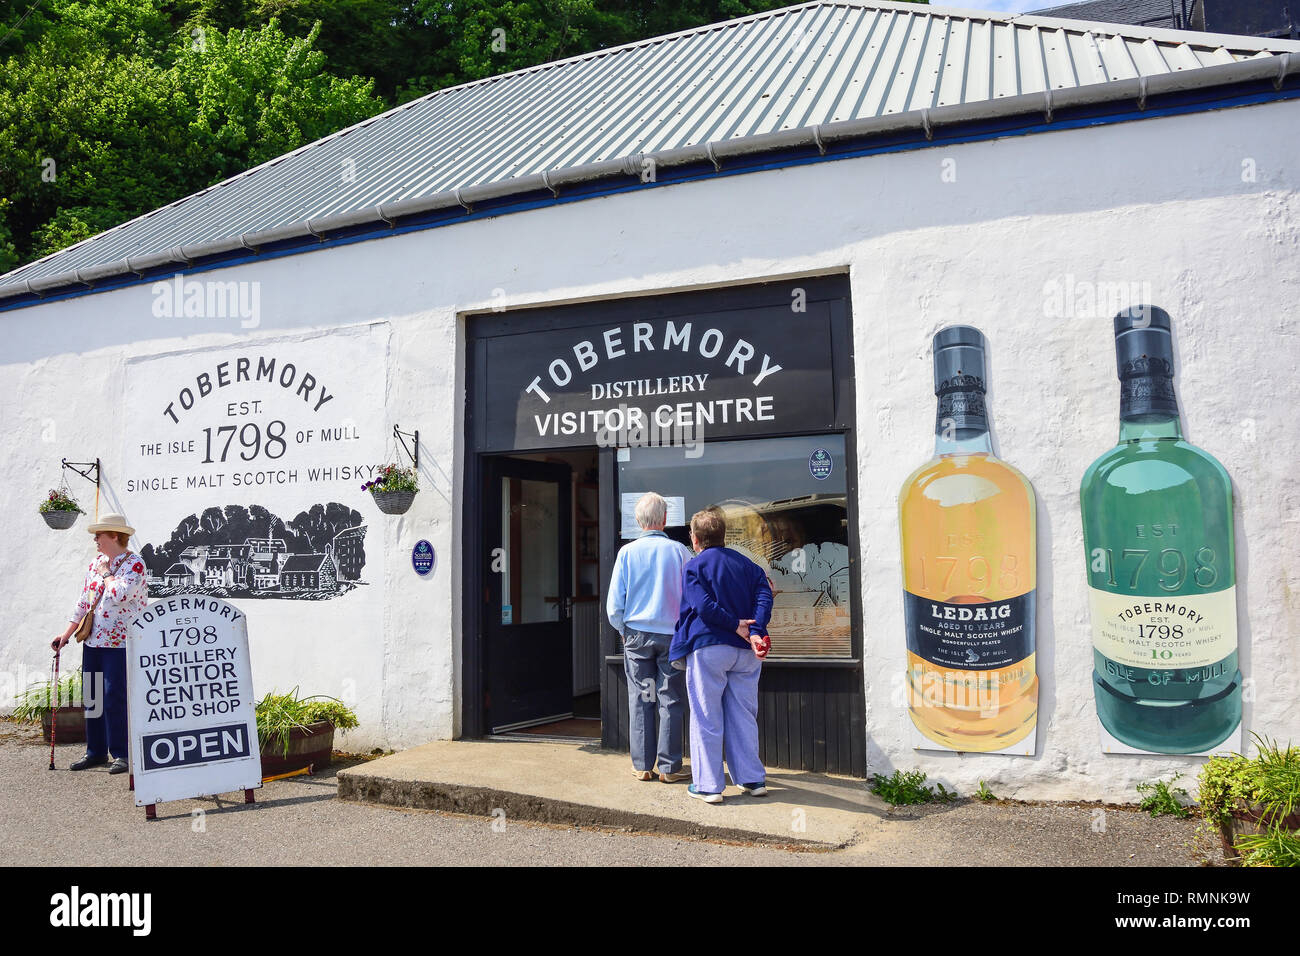 Entrance to Tobermory Distillery Visitor Centre and shop, Ledaig, Tobermory, Isle of Bute, Inner Hebrides, Argyll and Bute, Scotland, United Kingdom - Stock Image